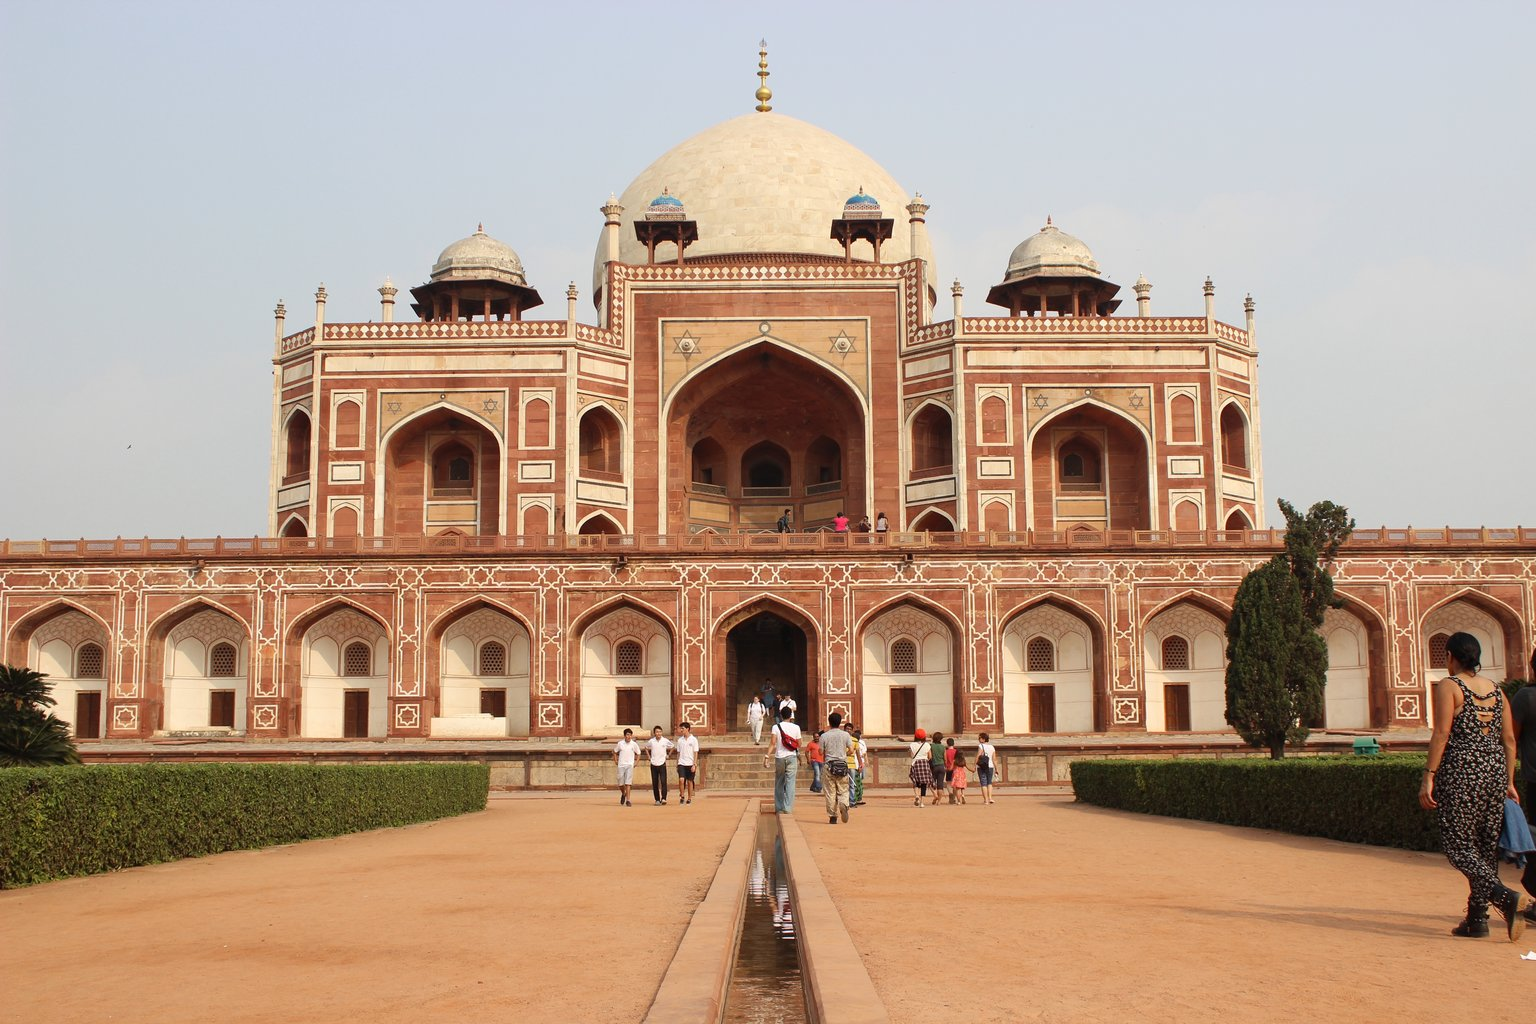 Humayun Tomb Walk – A walk through history